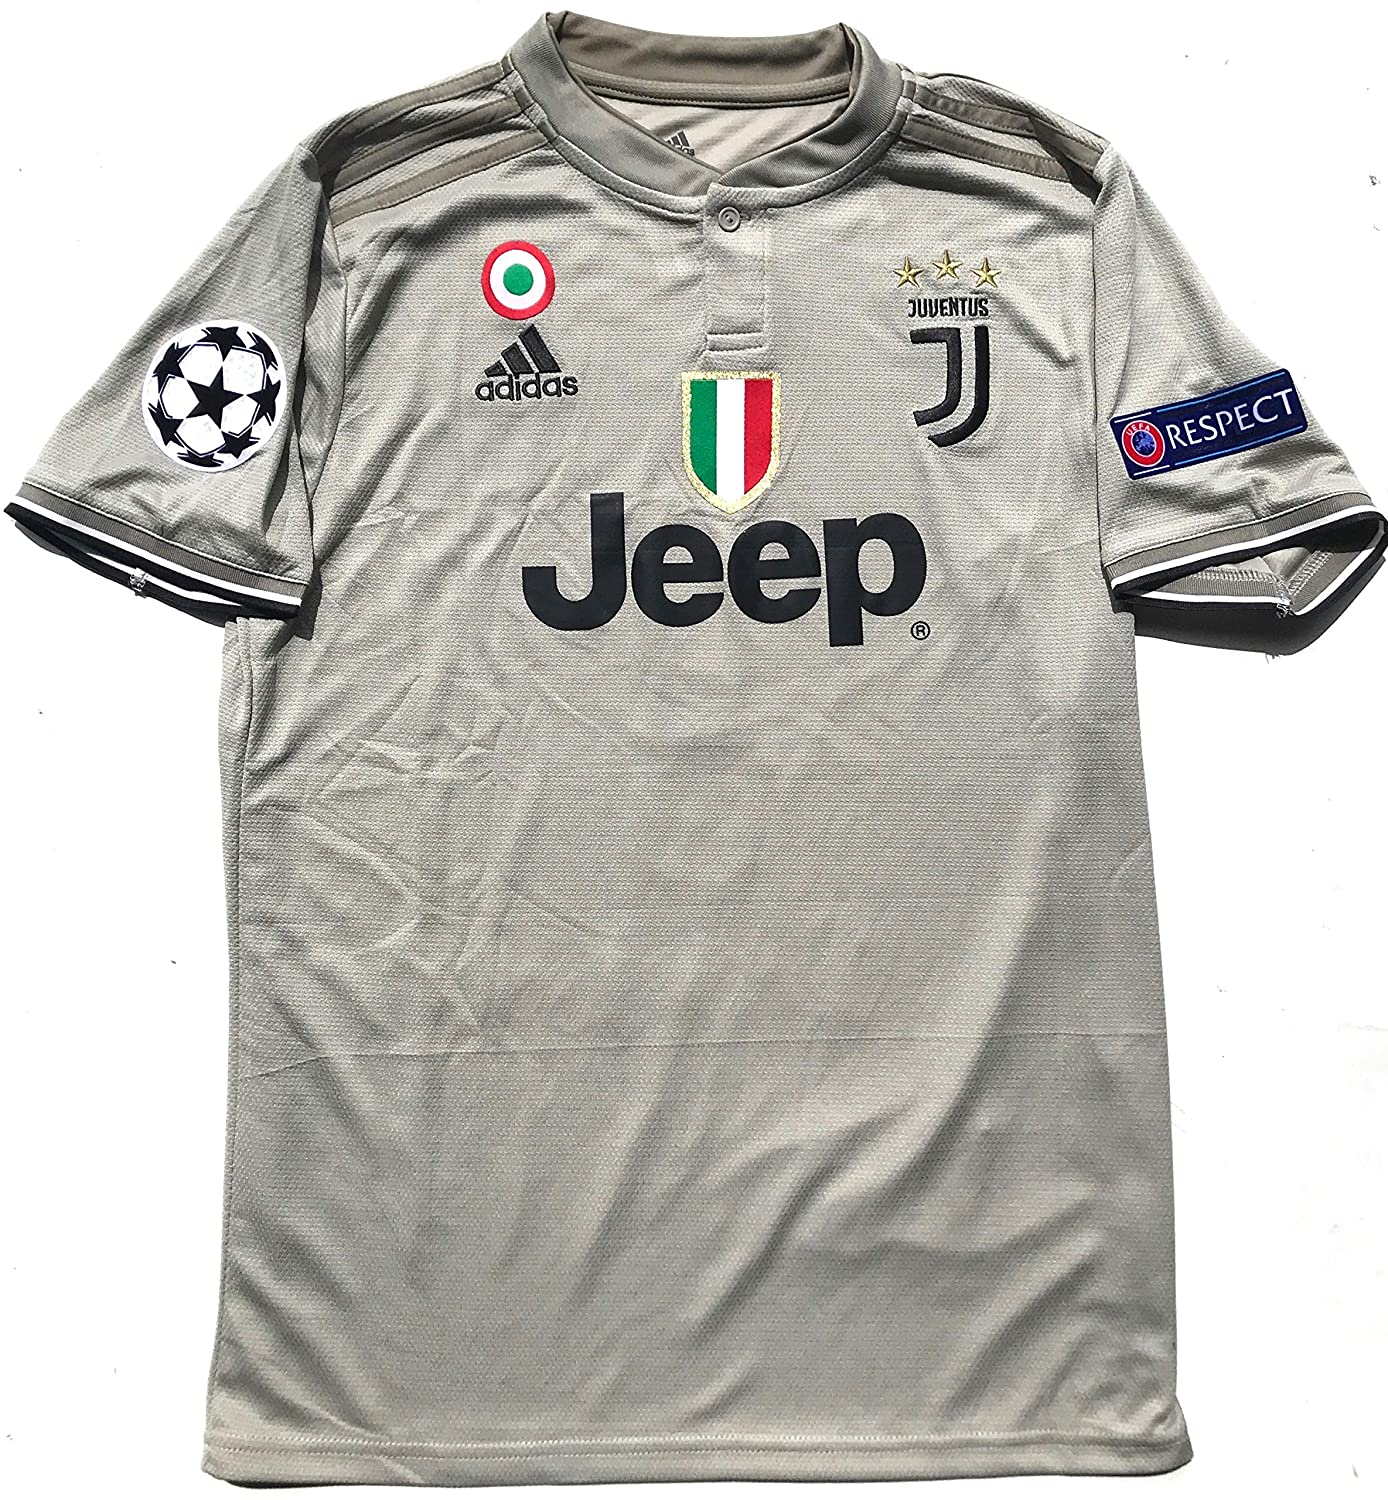 huge discount 35338 6340f Le Roux Juventus FC 2019 Home Soccer Jersey Men Ronaldo No. #7 on The Back  All Patches - Logos as Original